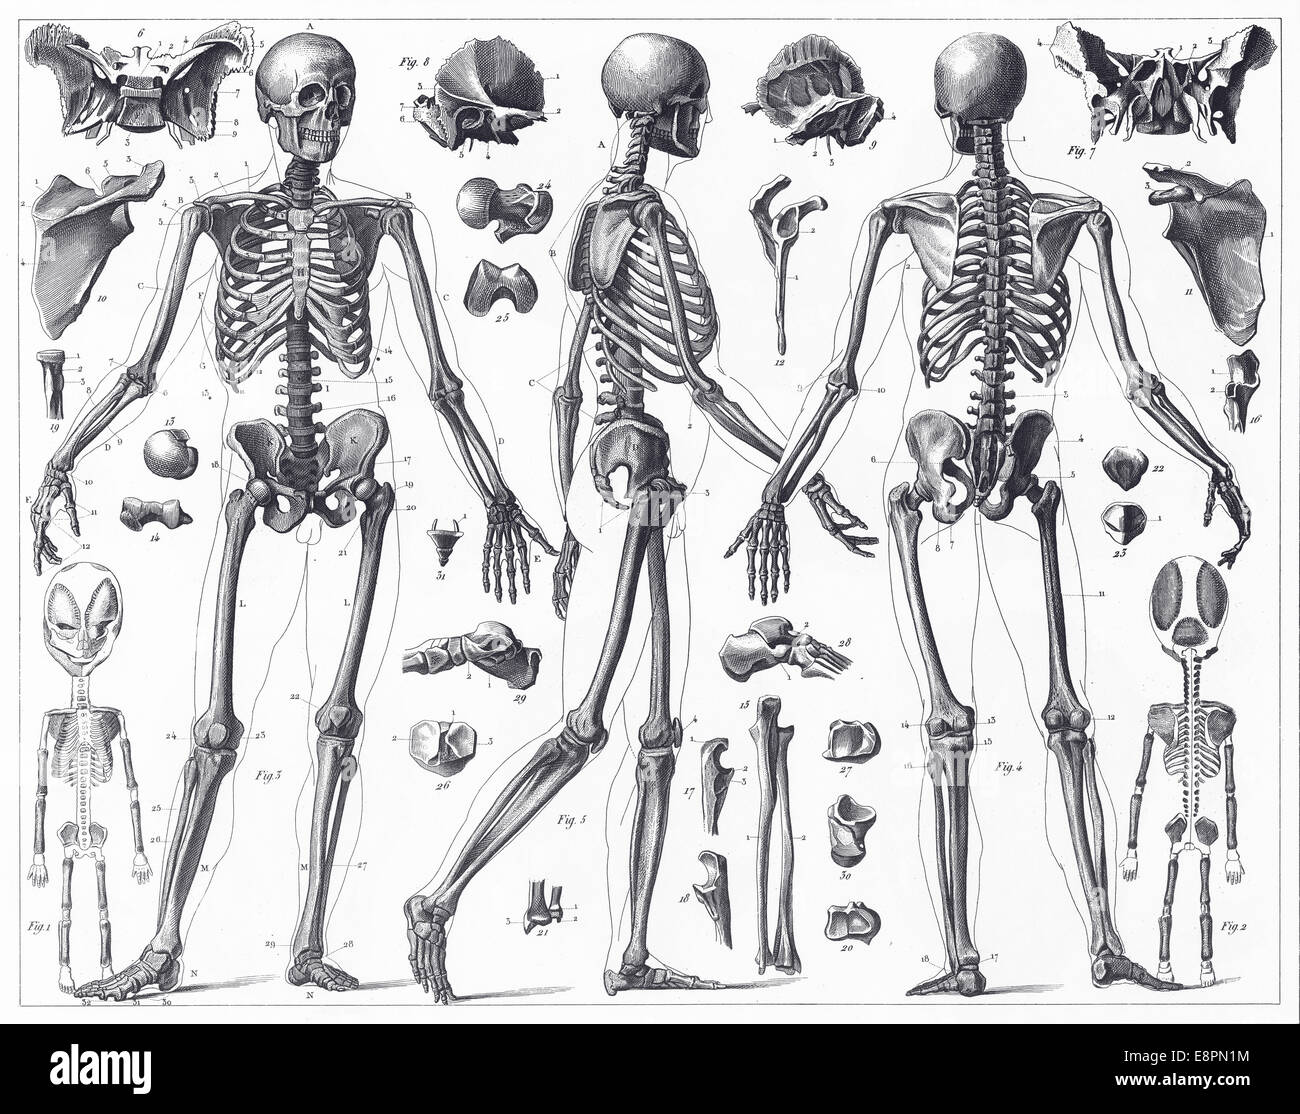 Engraved Illustrations Of Anatomy Of The Bones From Iconographic